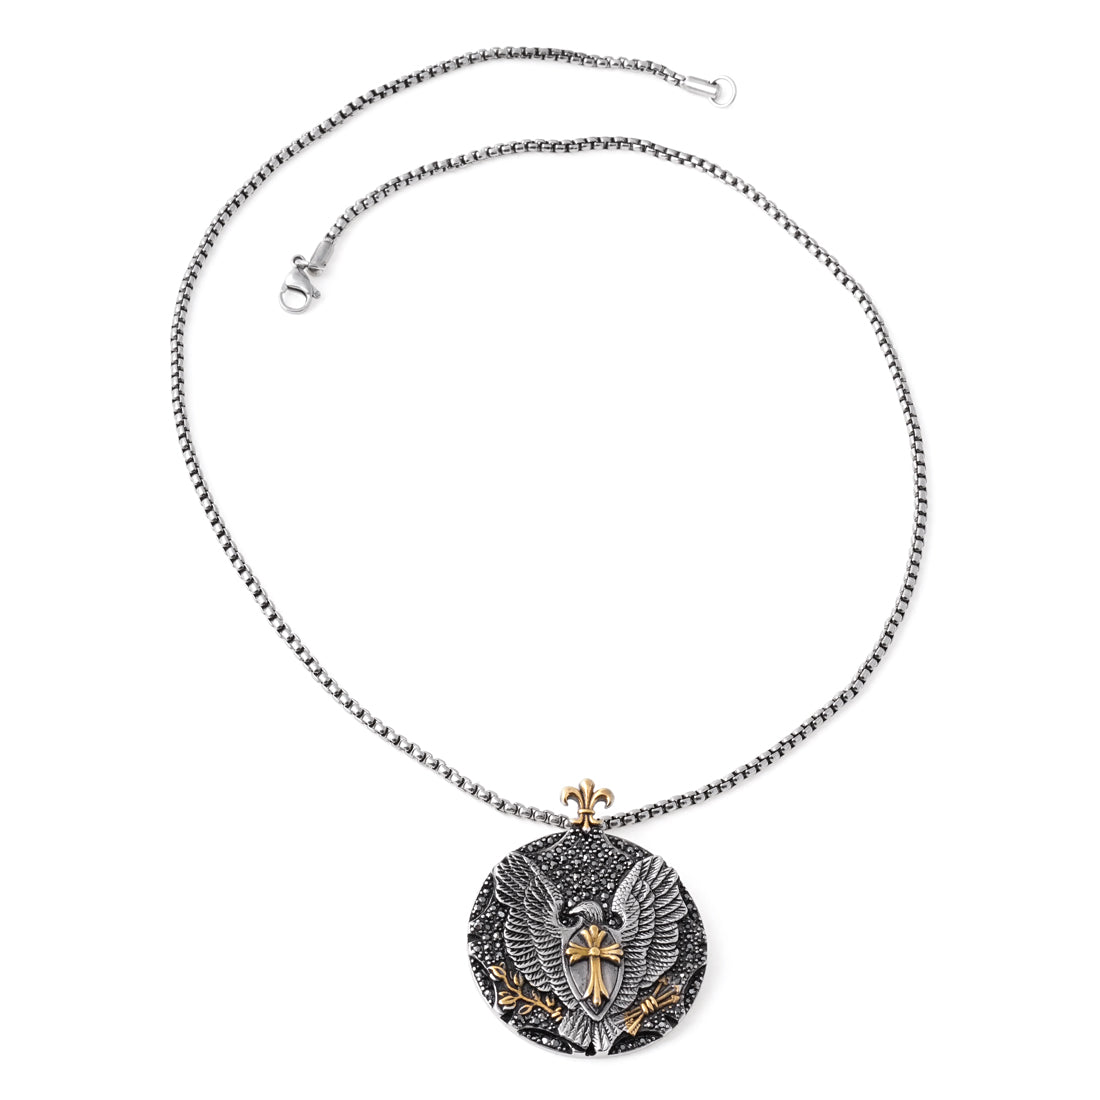 SILVER Stainless Steel Eagle Cross Pendant Necklace - URBANCREWS